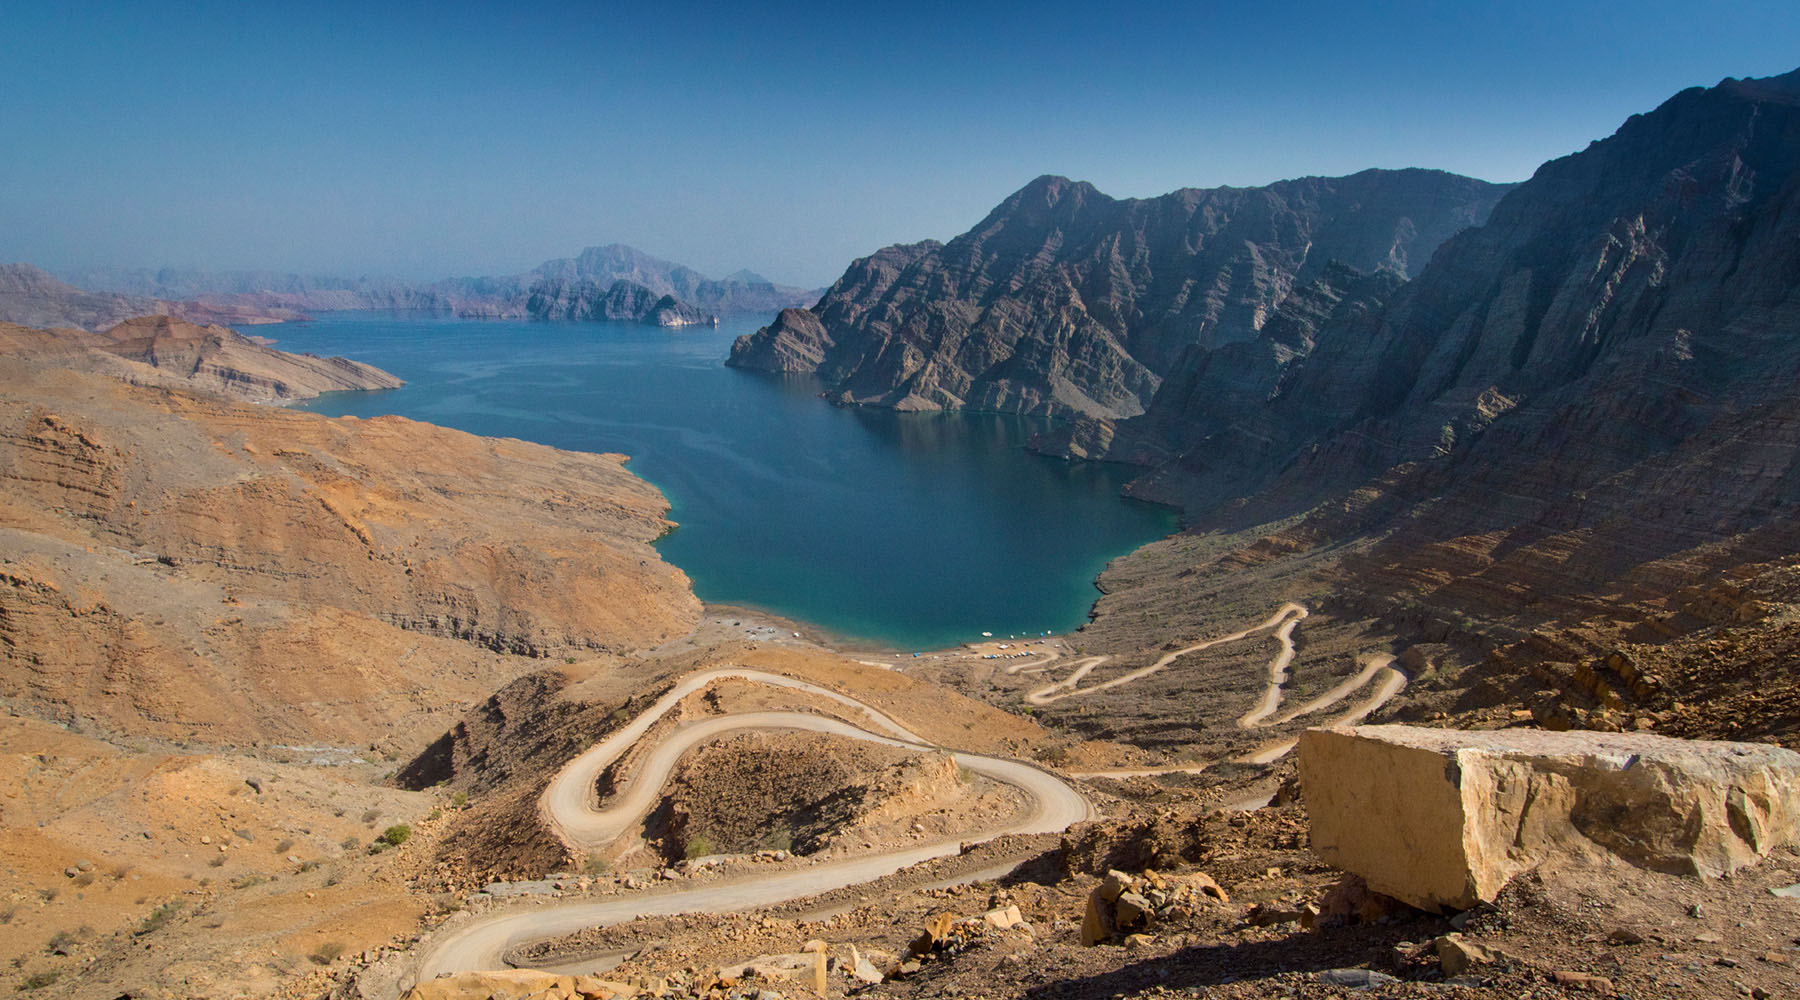 Exploring Jebel Harim and Oman's Musandam Peninsula